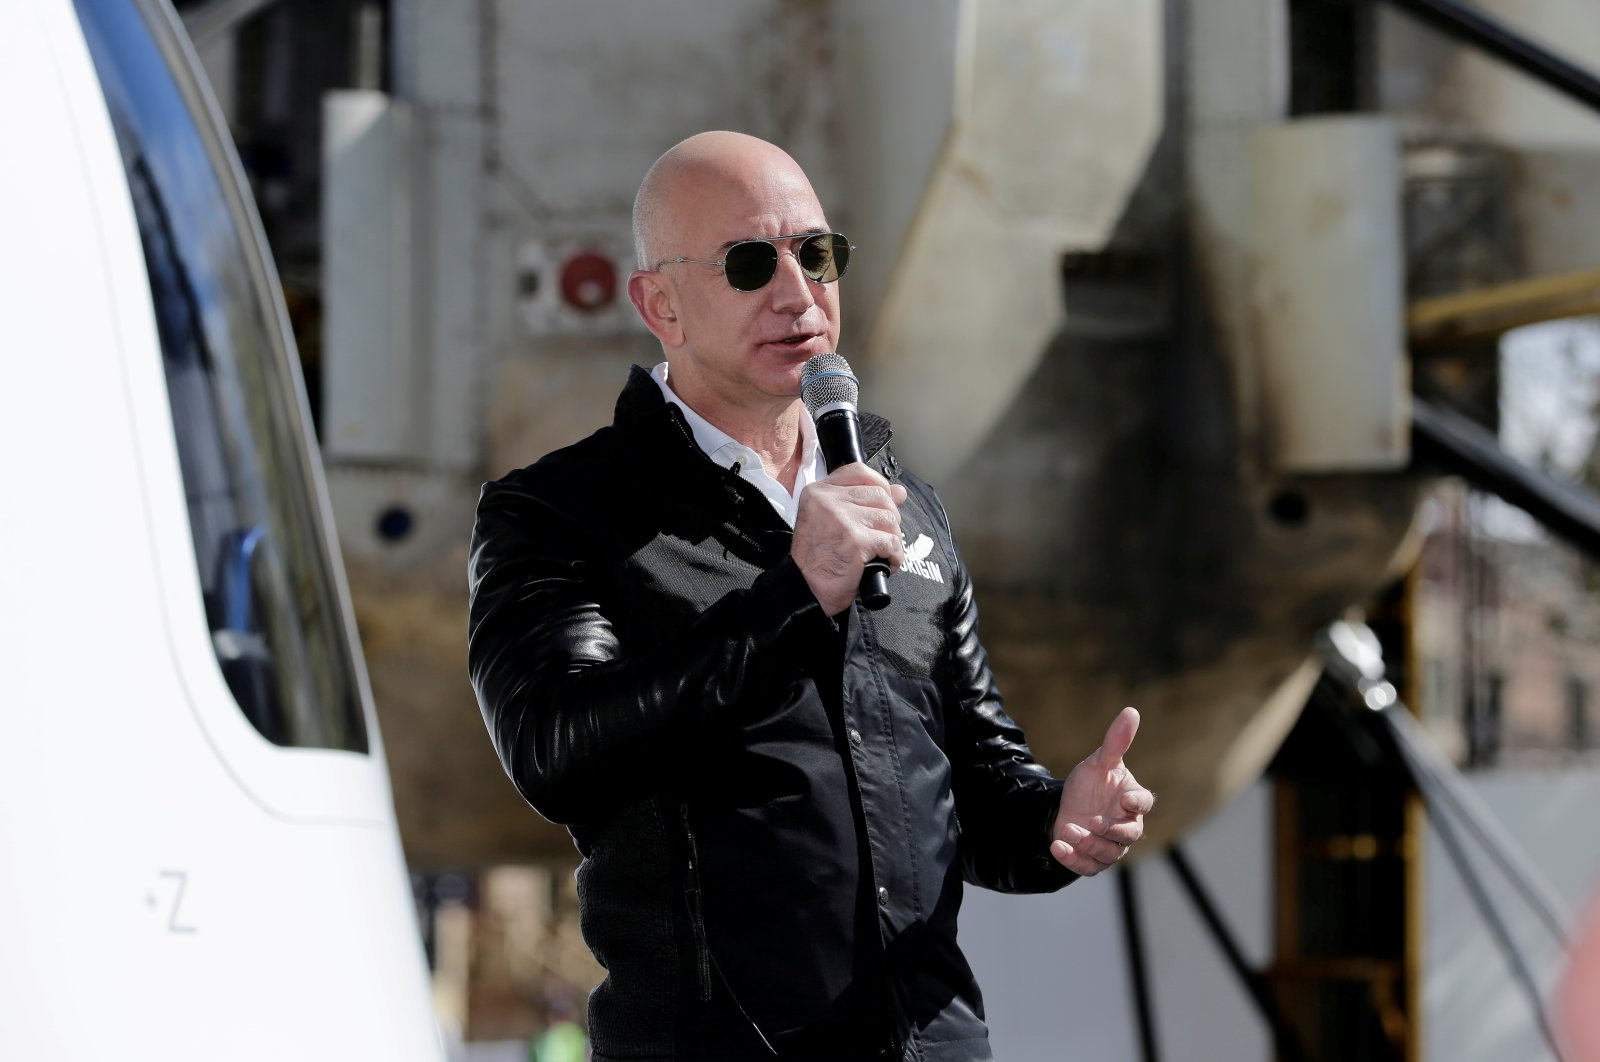 Amazon and Blue Origin founder Jeff Bezos addresses the media about the New Shepard rocket booster and crew capsule mockup at the 33rd Space Symposium in Colorado Springs, U.S., April 5, 2017. (Reuters Photo)